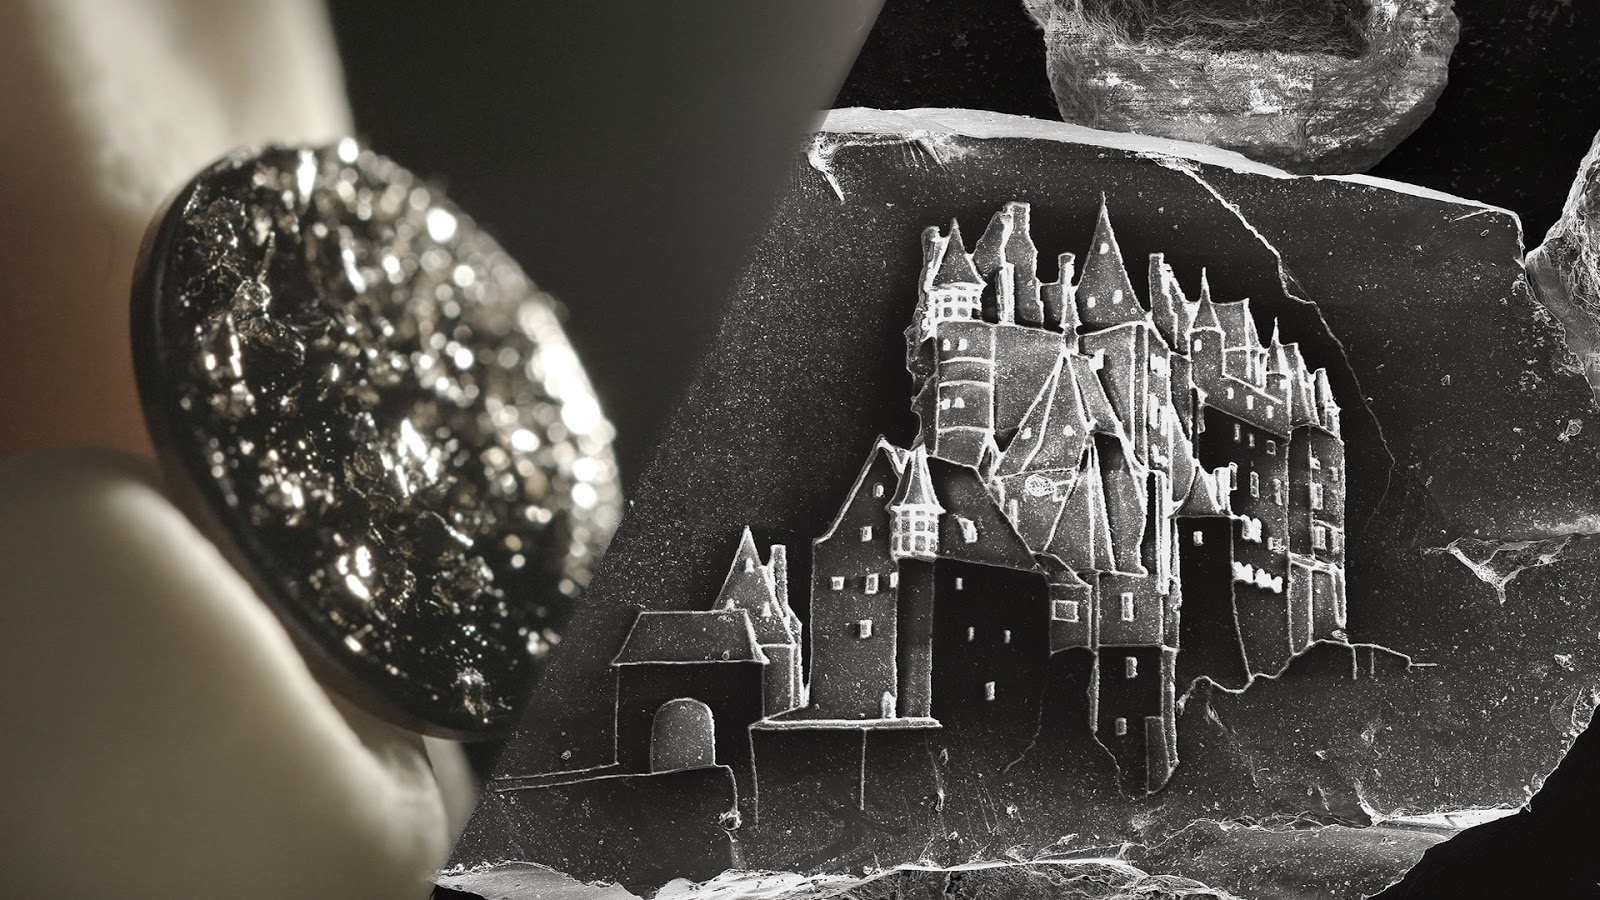 Creating Sand Castles With A Single Grain Of Sand